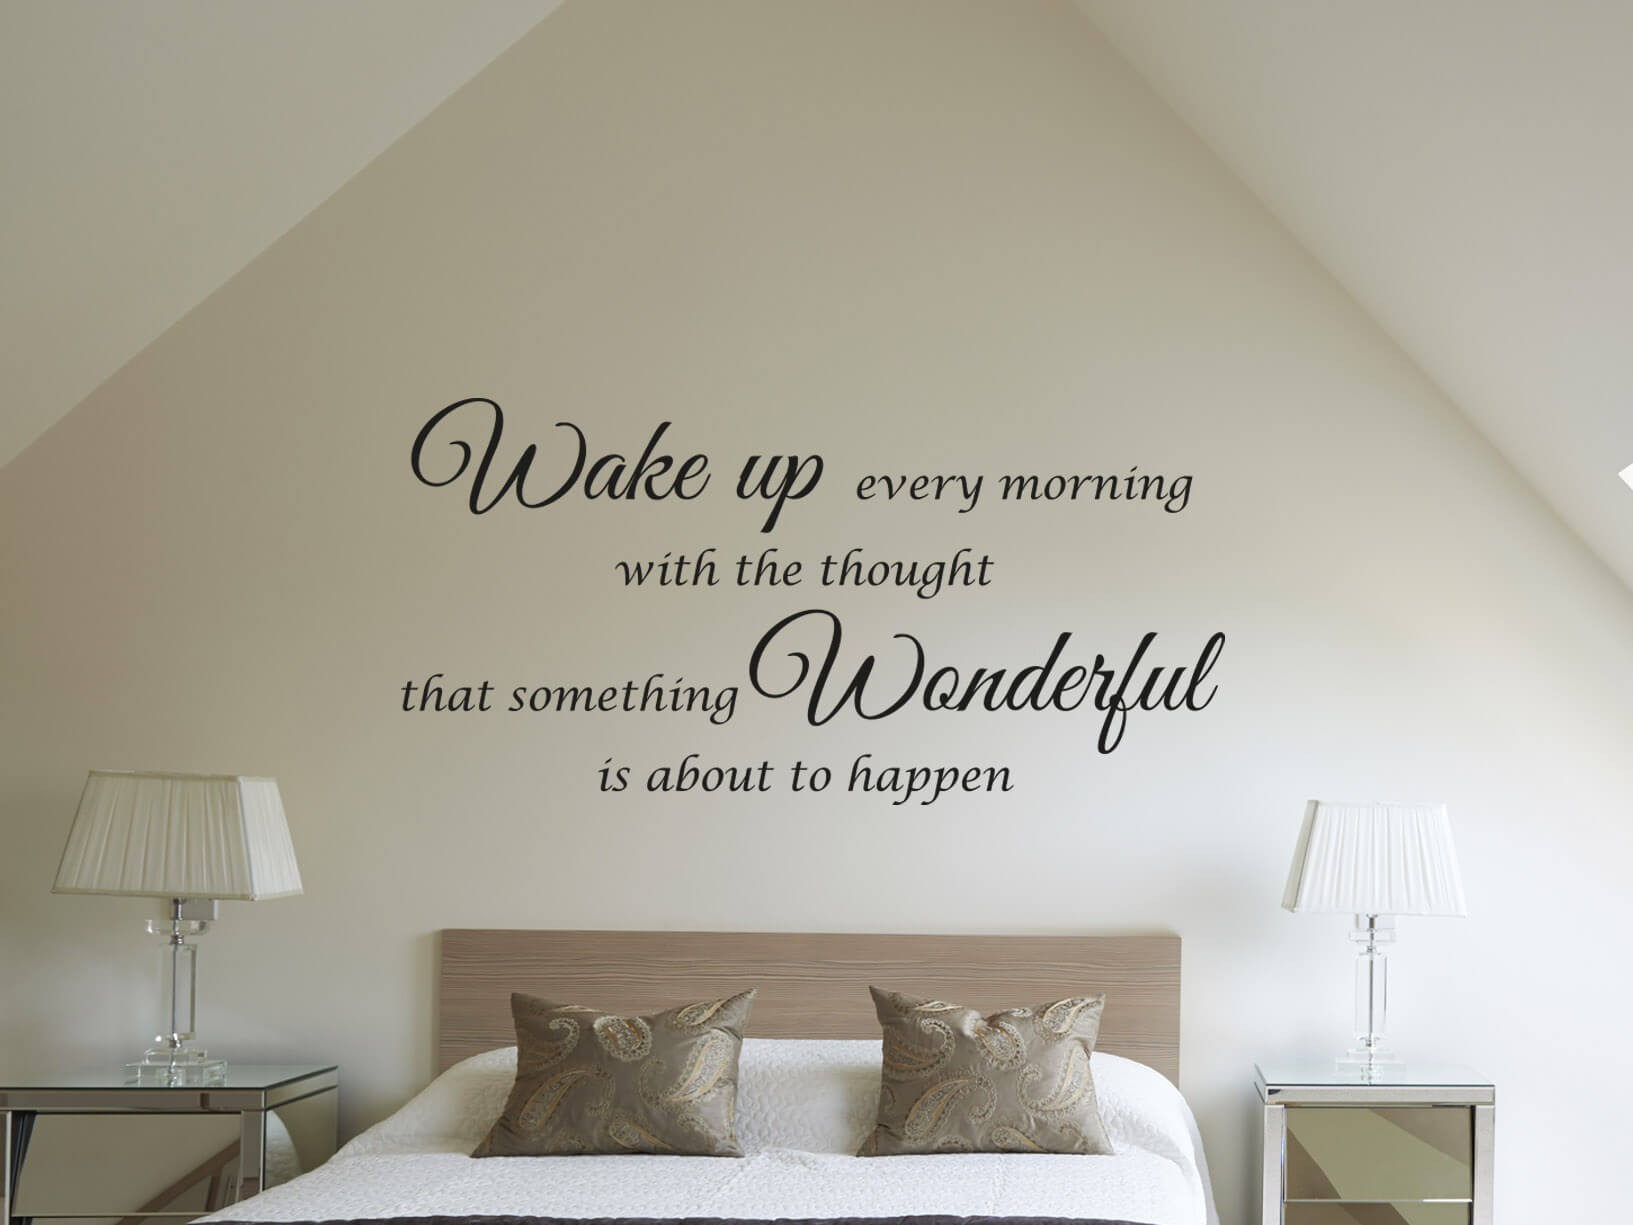 Muursticker wake up every morning slaapkamer muurstickers for Muurteksten woonkamer